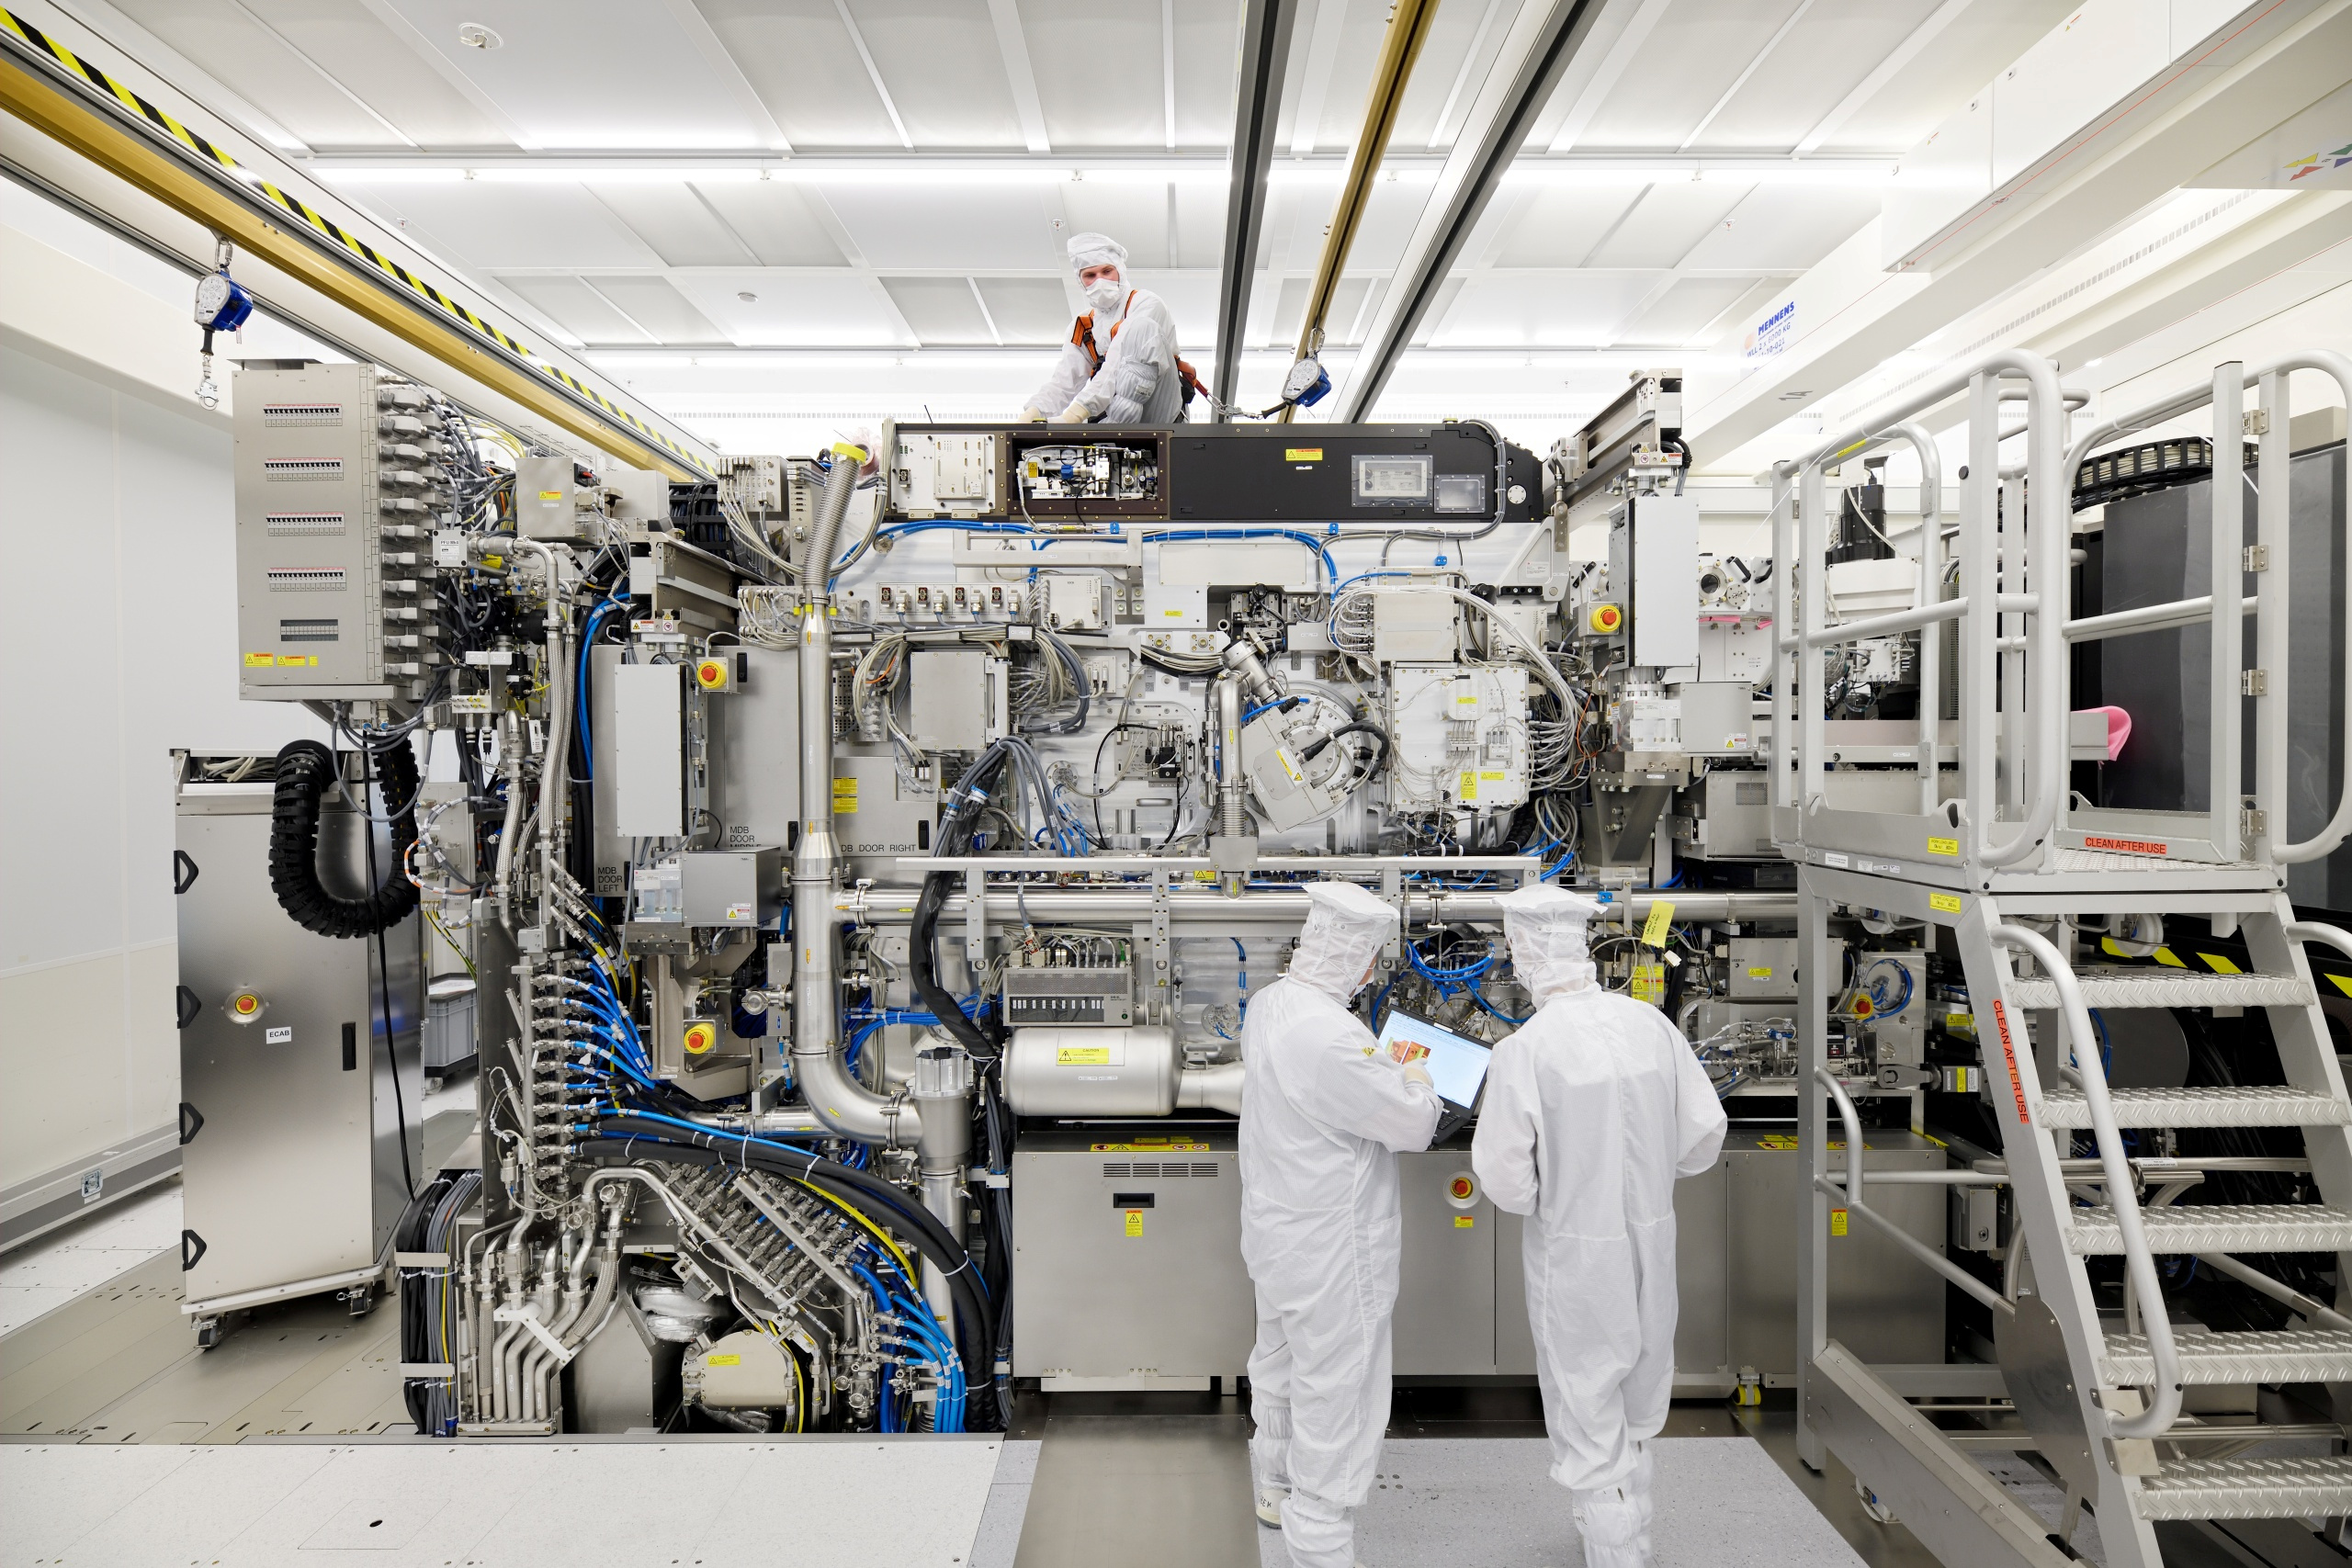 Employees are seen working on the final assembly of ASML's TWINSCAN NXE:3400B semiconductor lithography tool with its panels removed, in Veldhoven, Netherlands, in this picture taken April 4, 2019. Bart van Overbeeke Fotografie/ASML/Handout via REUTERS ATTENTION EDITORS - THIS IMAGE HAS BEEN SUPPLIED BY A THIRD PARTY. MANDATORY CREDIT.